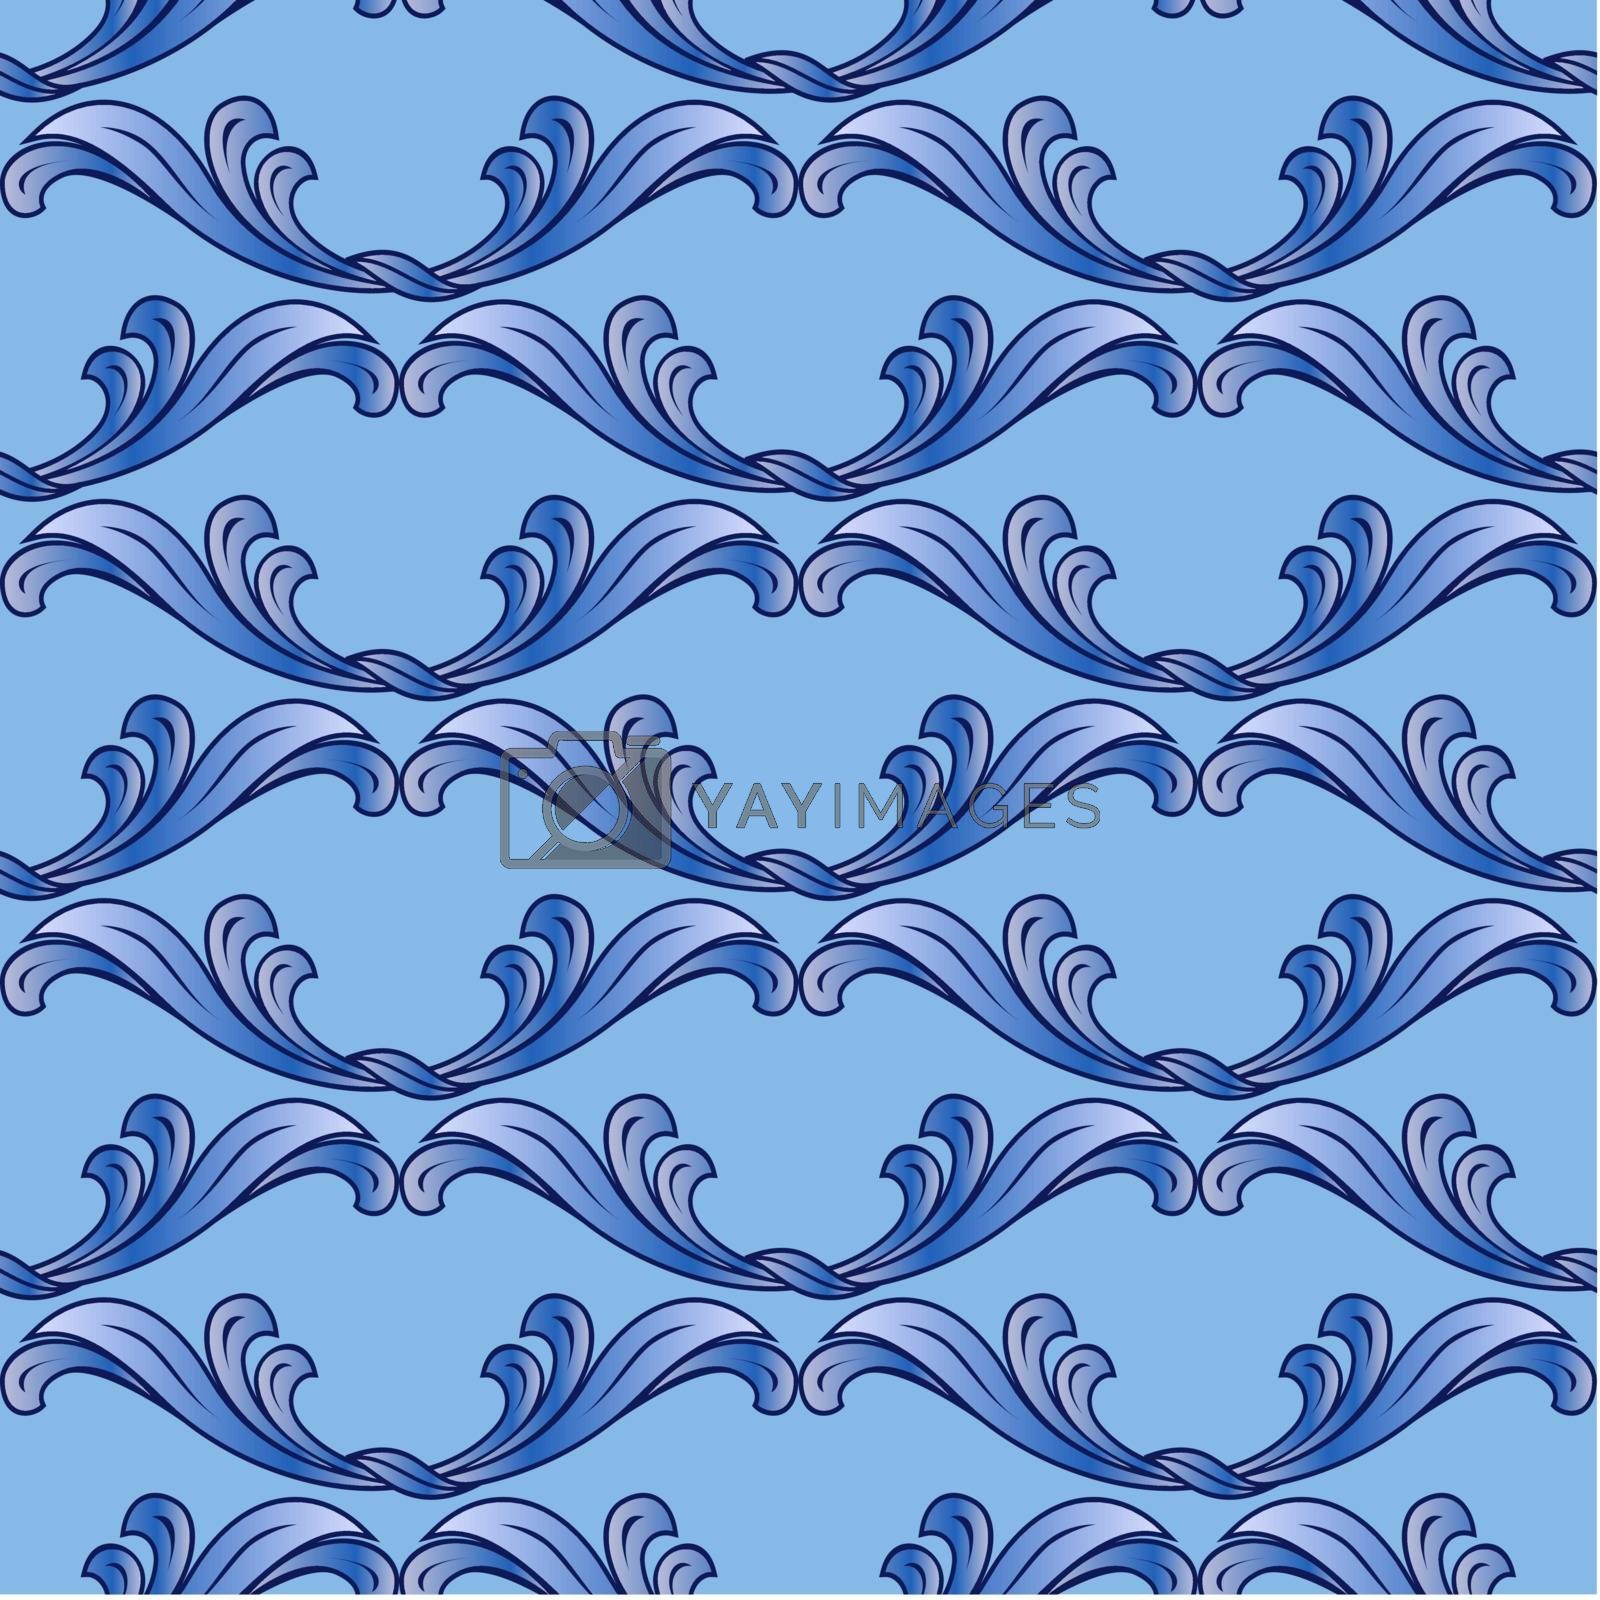 Royalty free image of Blue floral background by dvarg